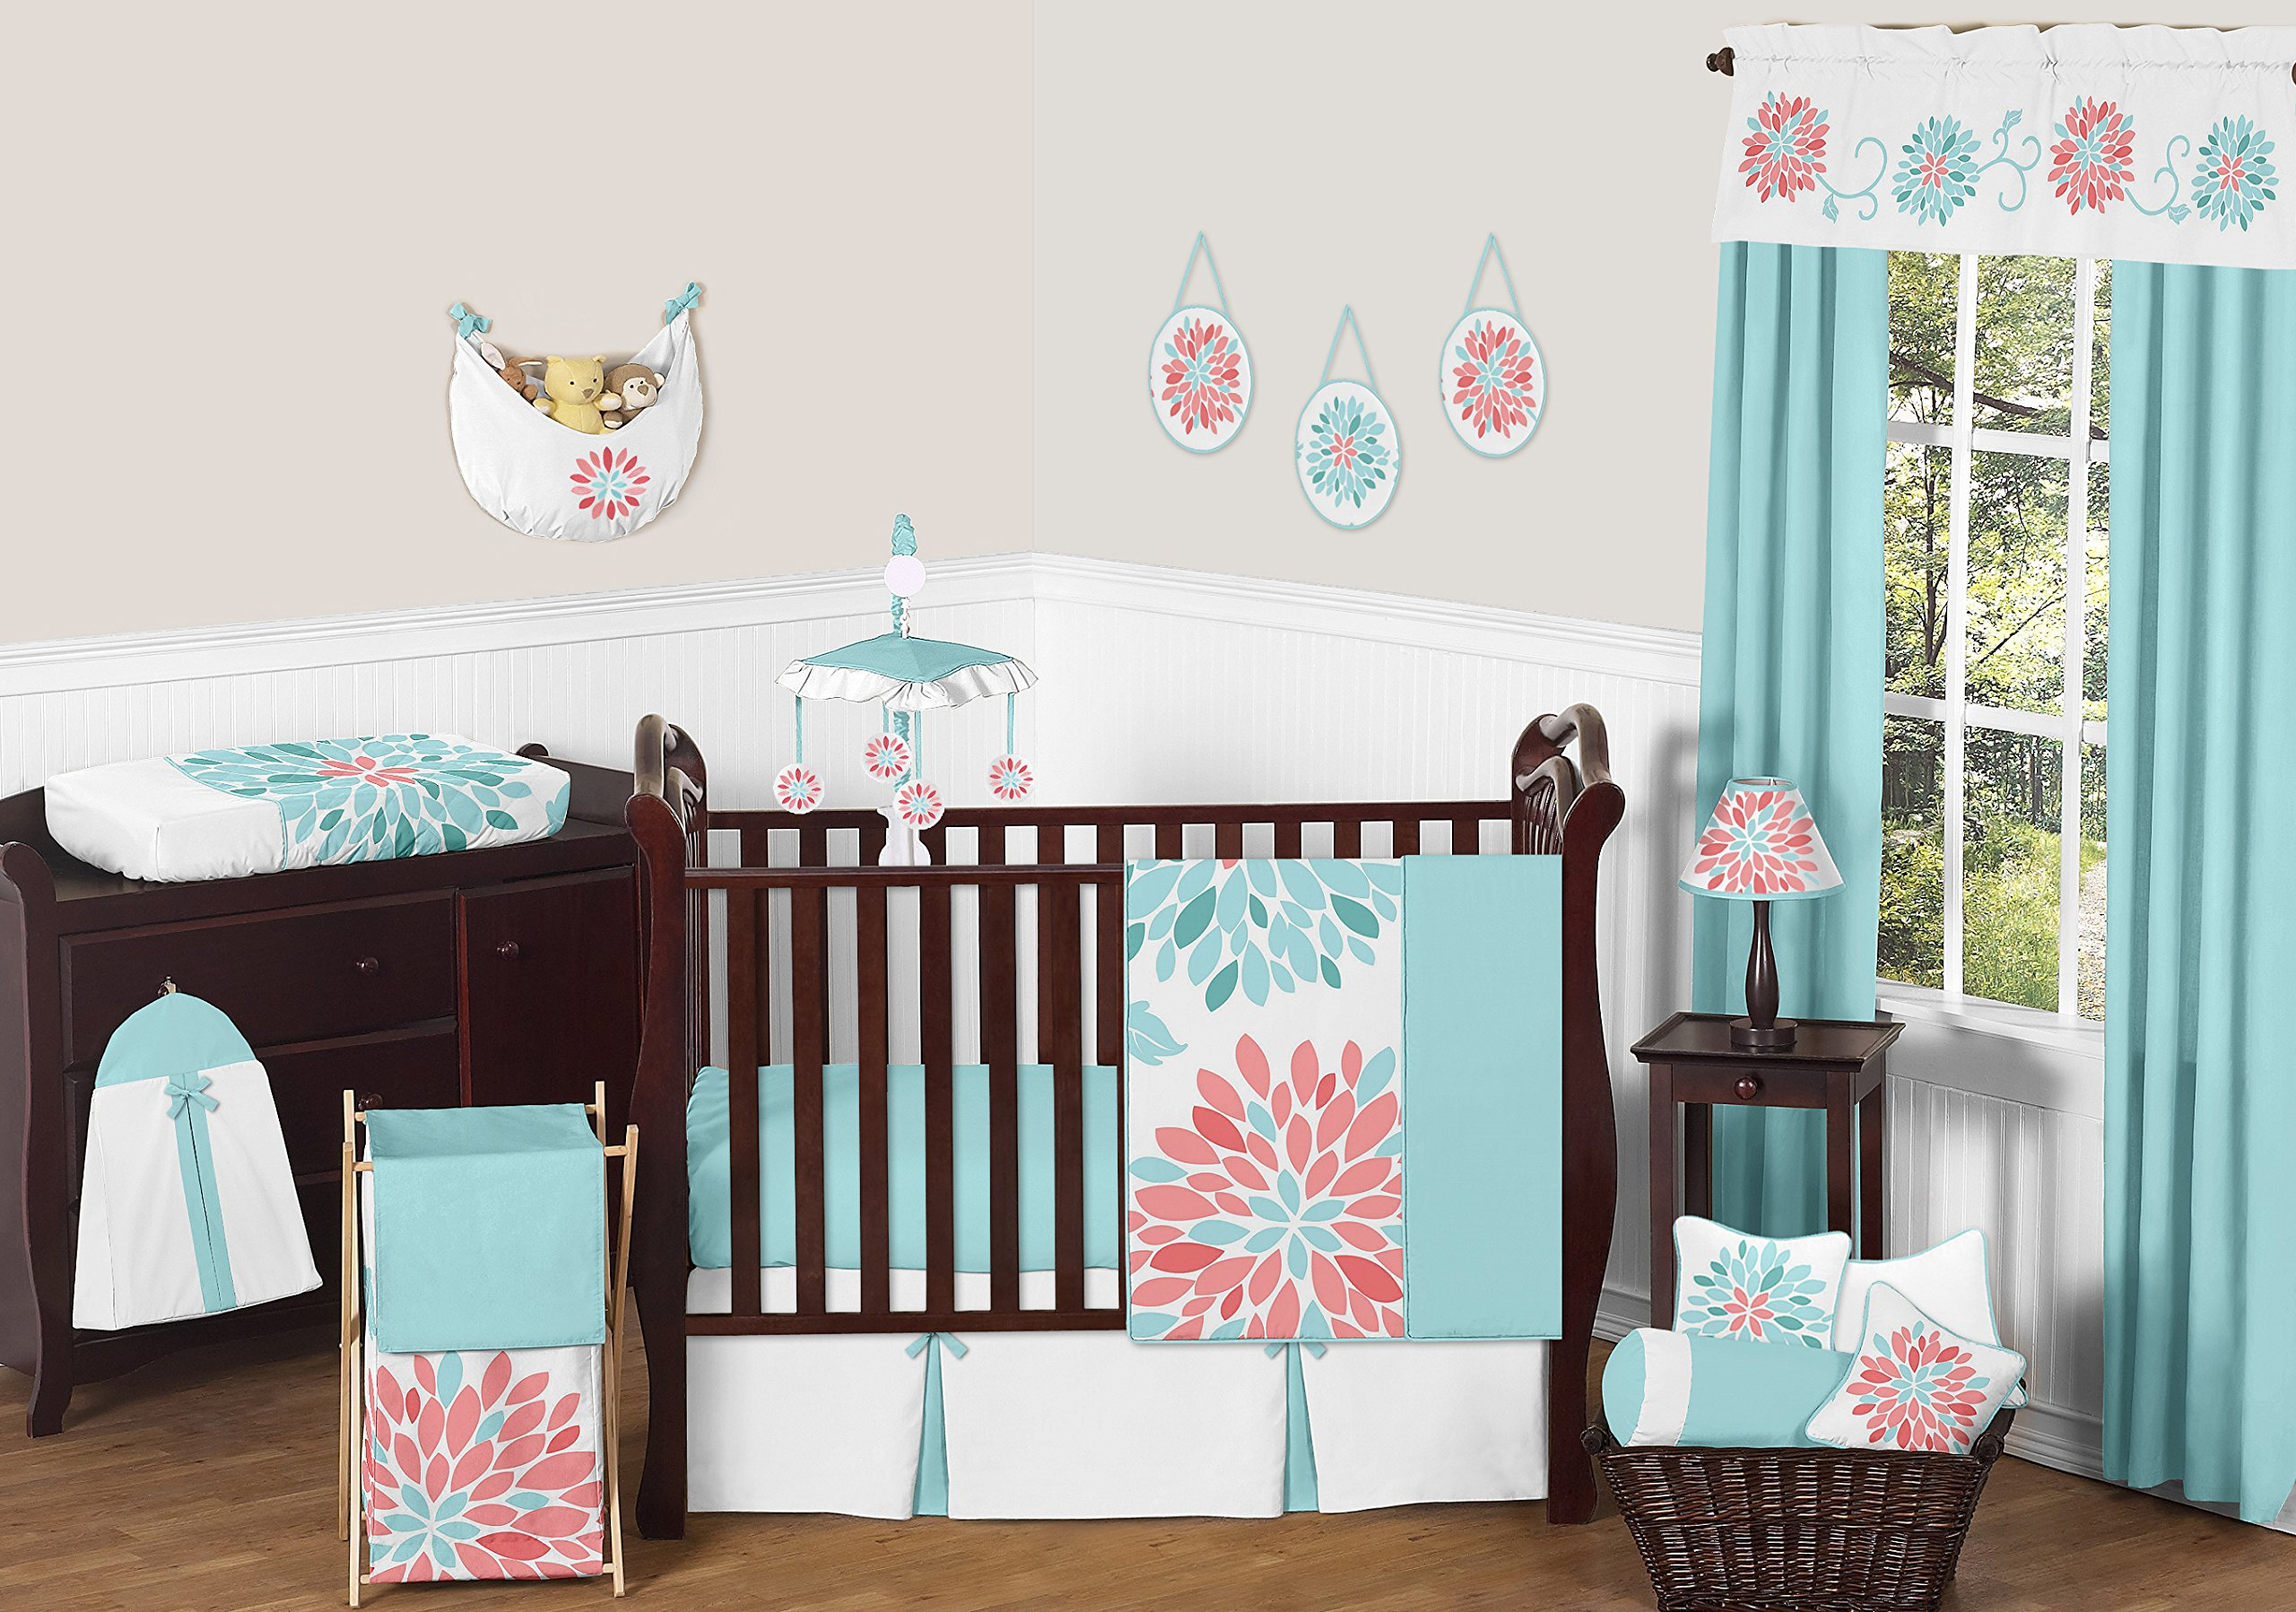 Sweet Jojo Designs 11-Piece Unique Turquoise Blue and Coral Emma Baby Girls Floral Modern Crib Bedding Set Without Bumper